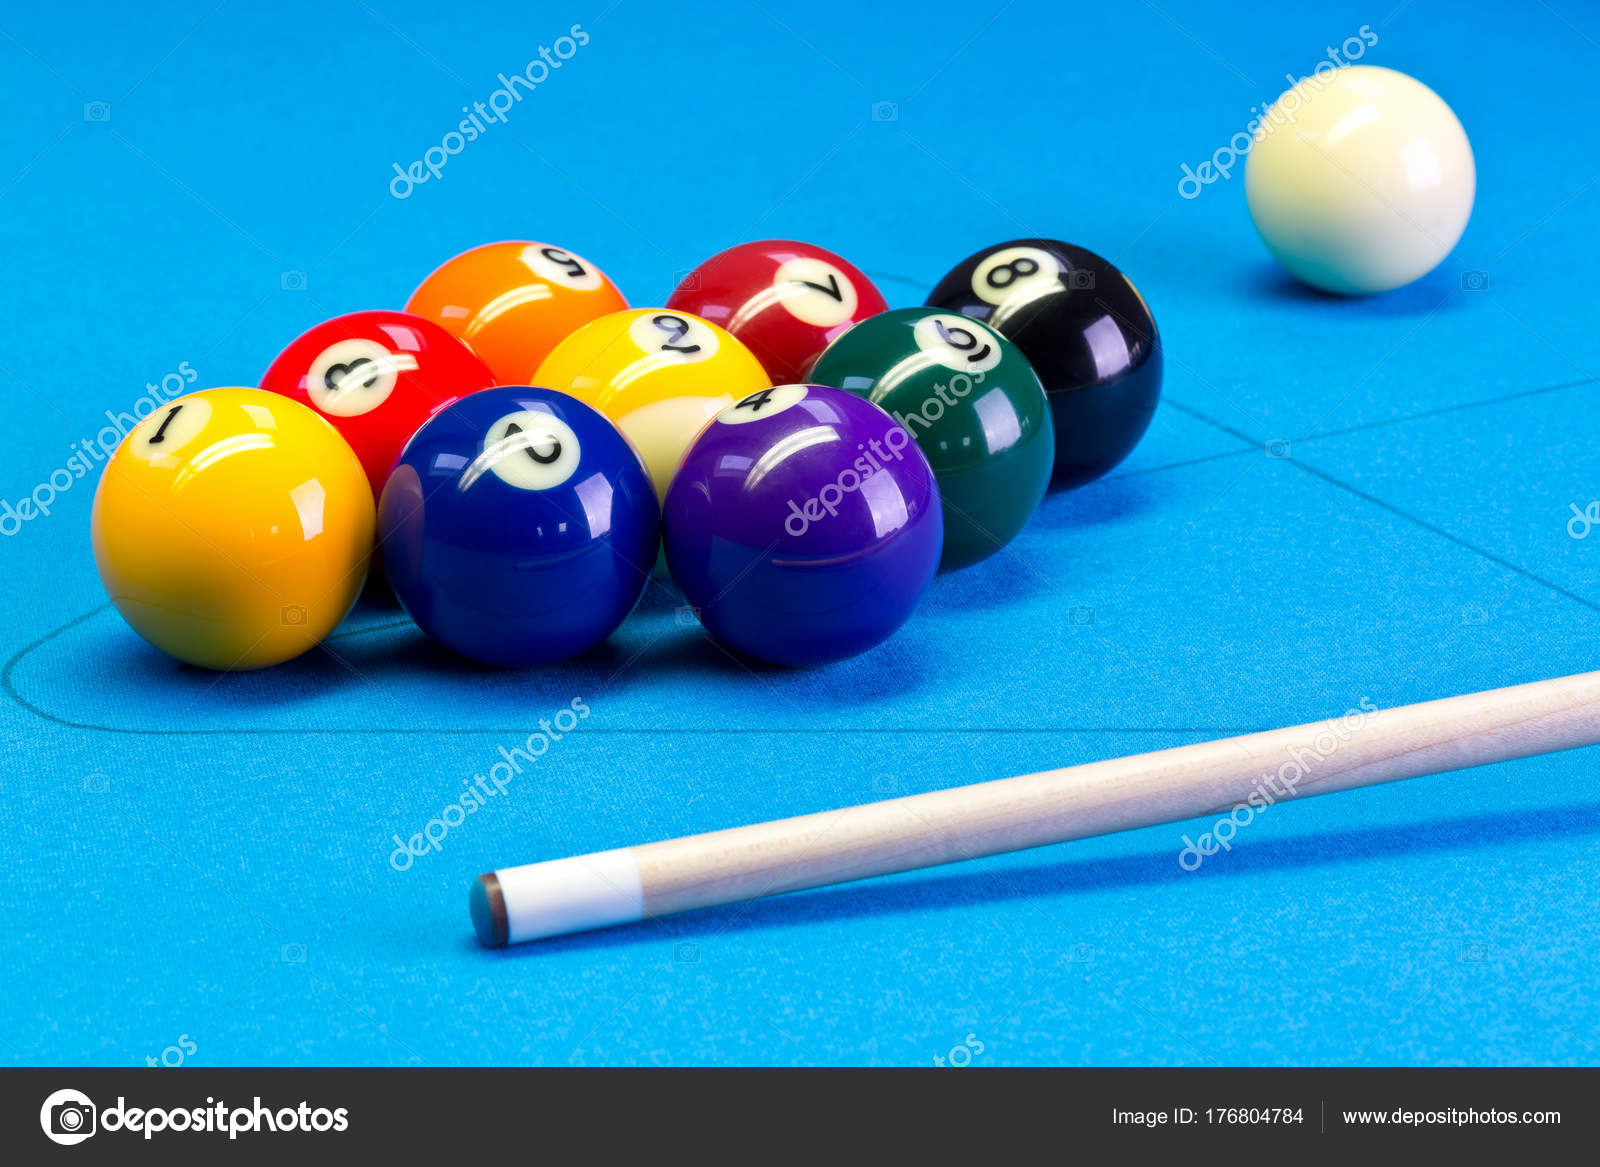 Pool Table Setup >> Billiard Pool Game Nine Ball Setup With Cue On Billiard